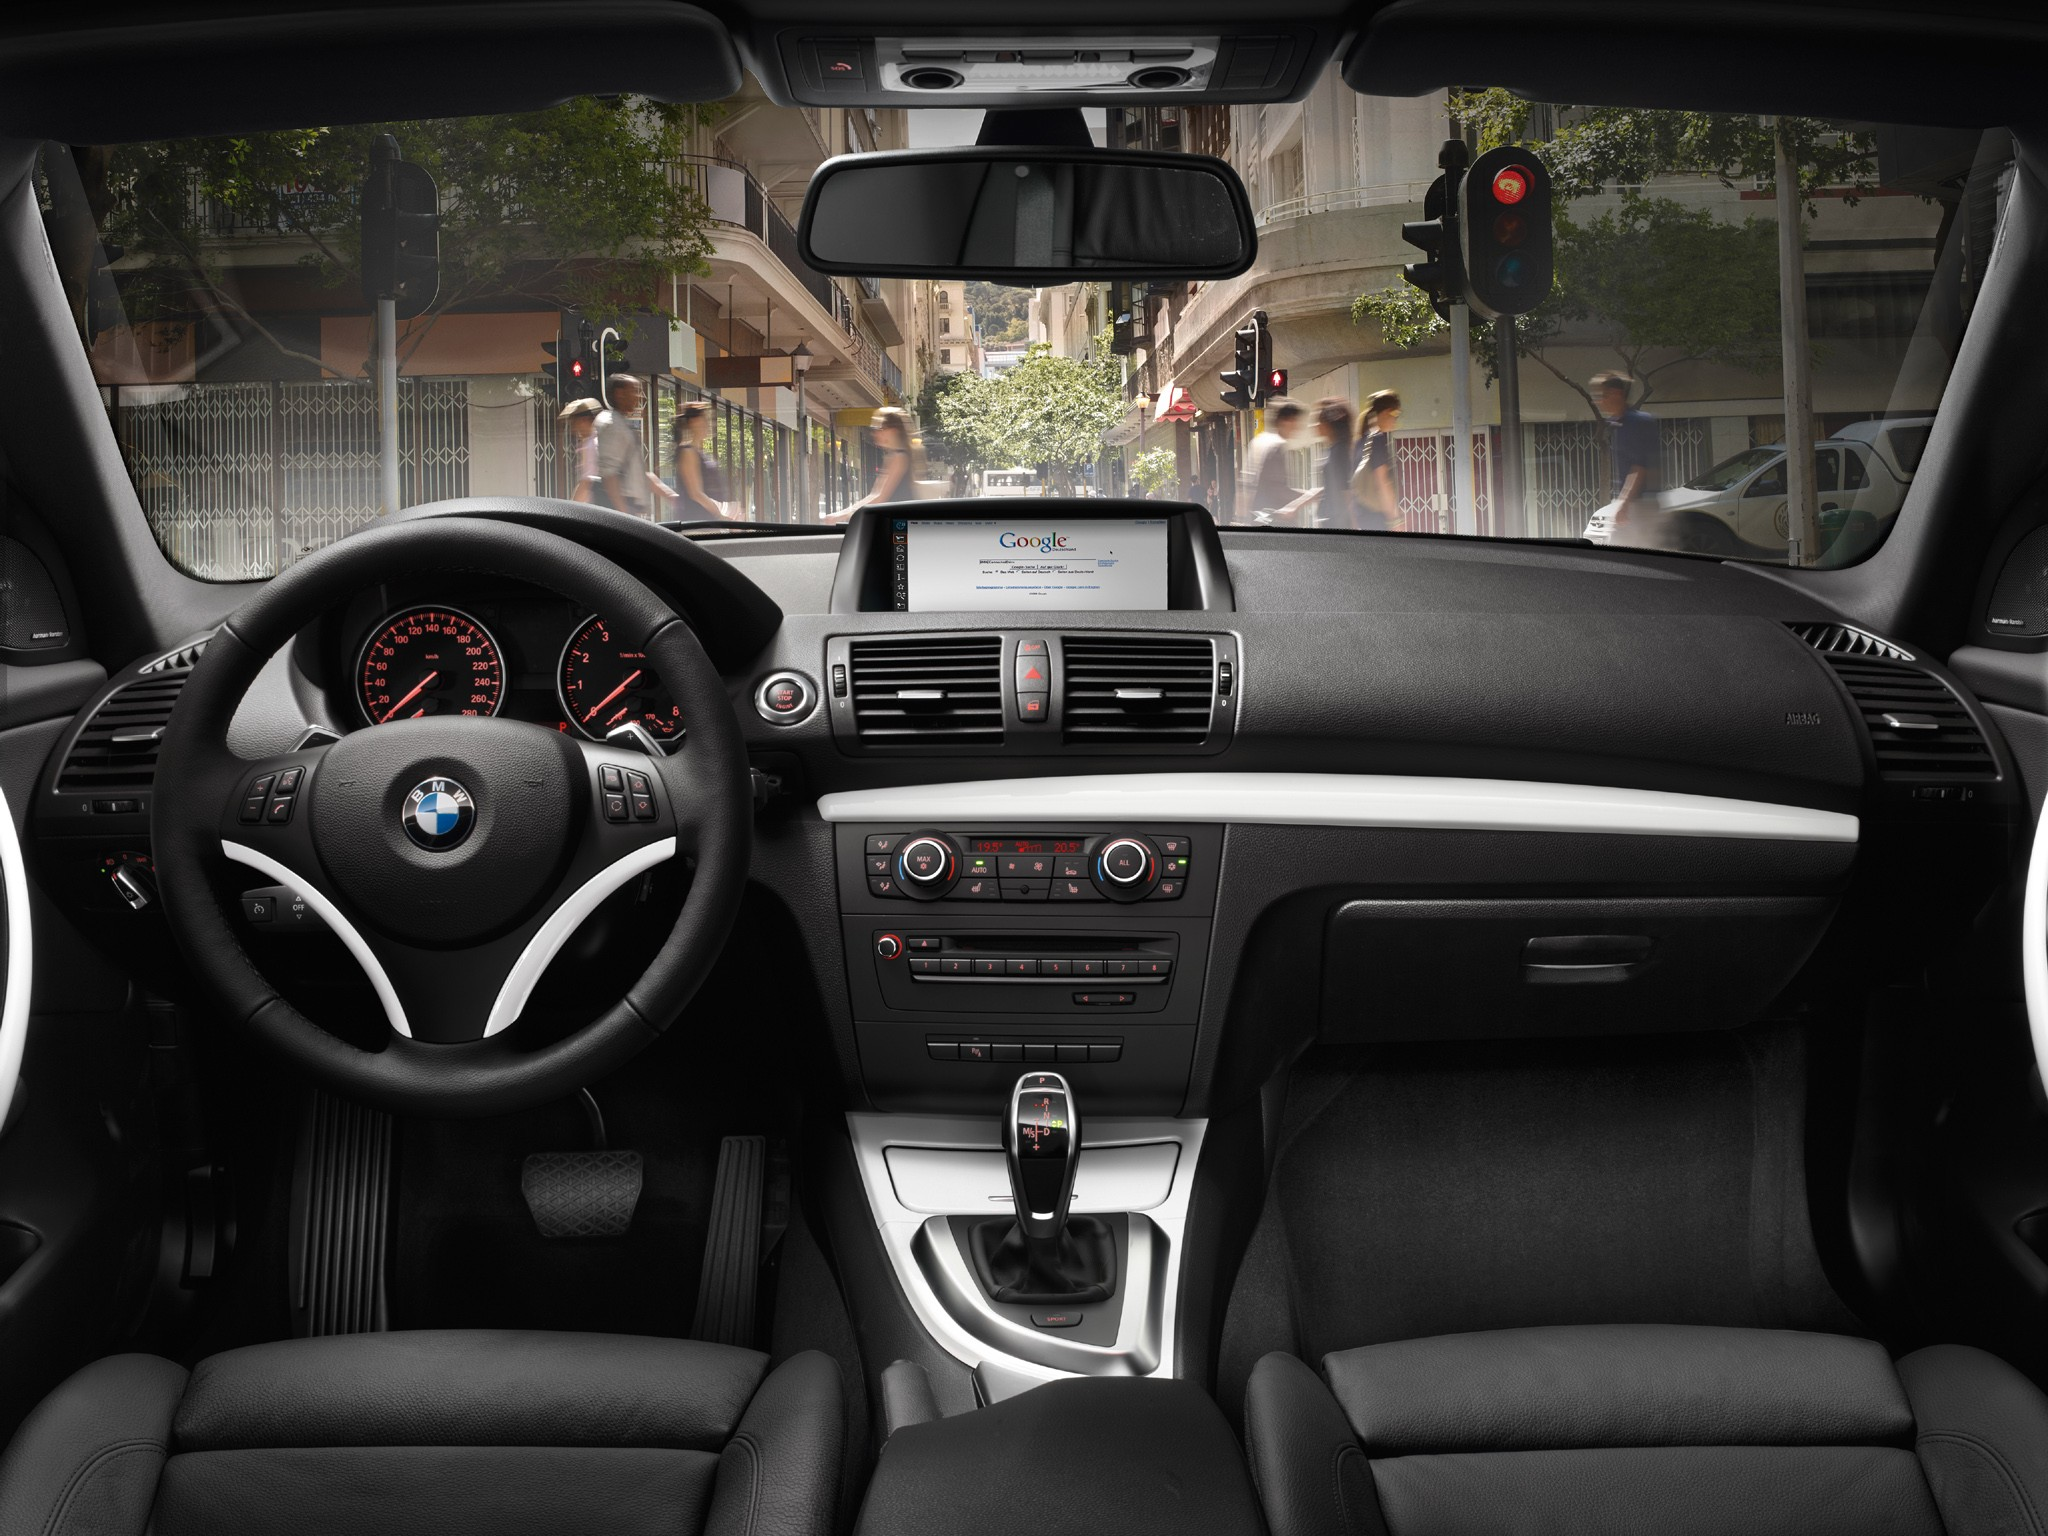 BMW 1 Series Coupe (E82) specs - 2010, 2011, 2012, 2013 - autoevolution